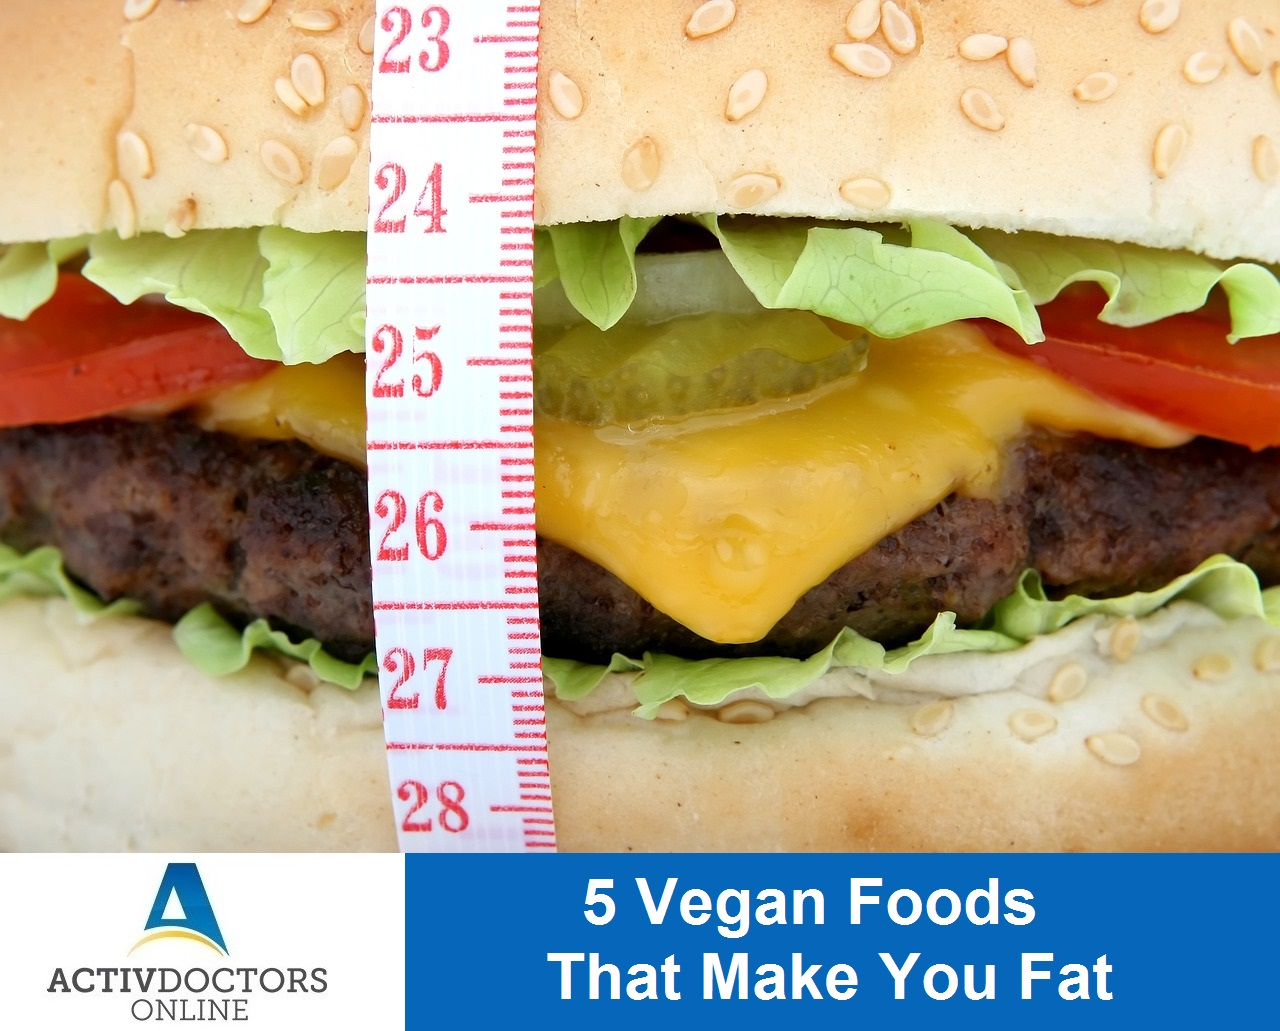 5 Vegan Foods That Make You Fat